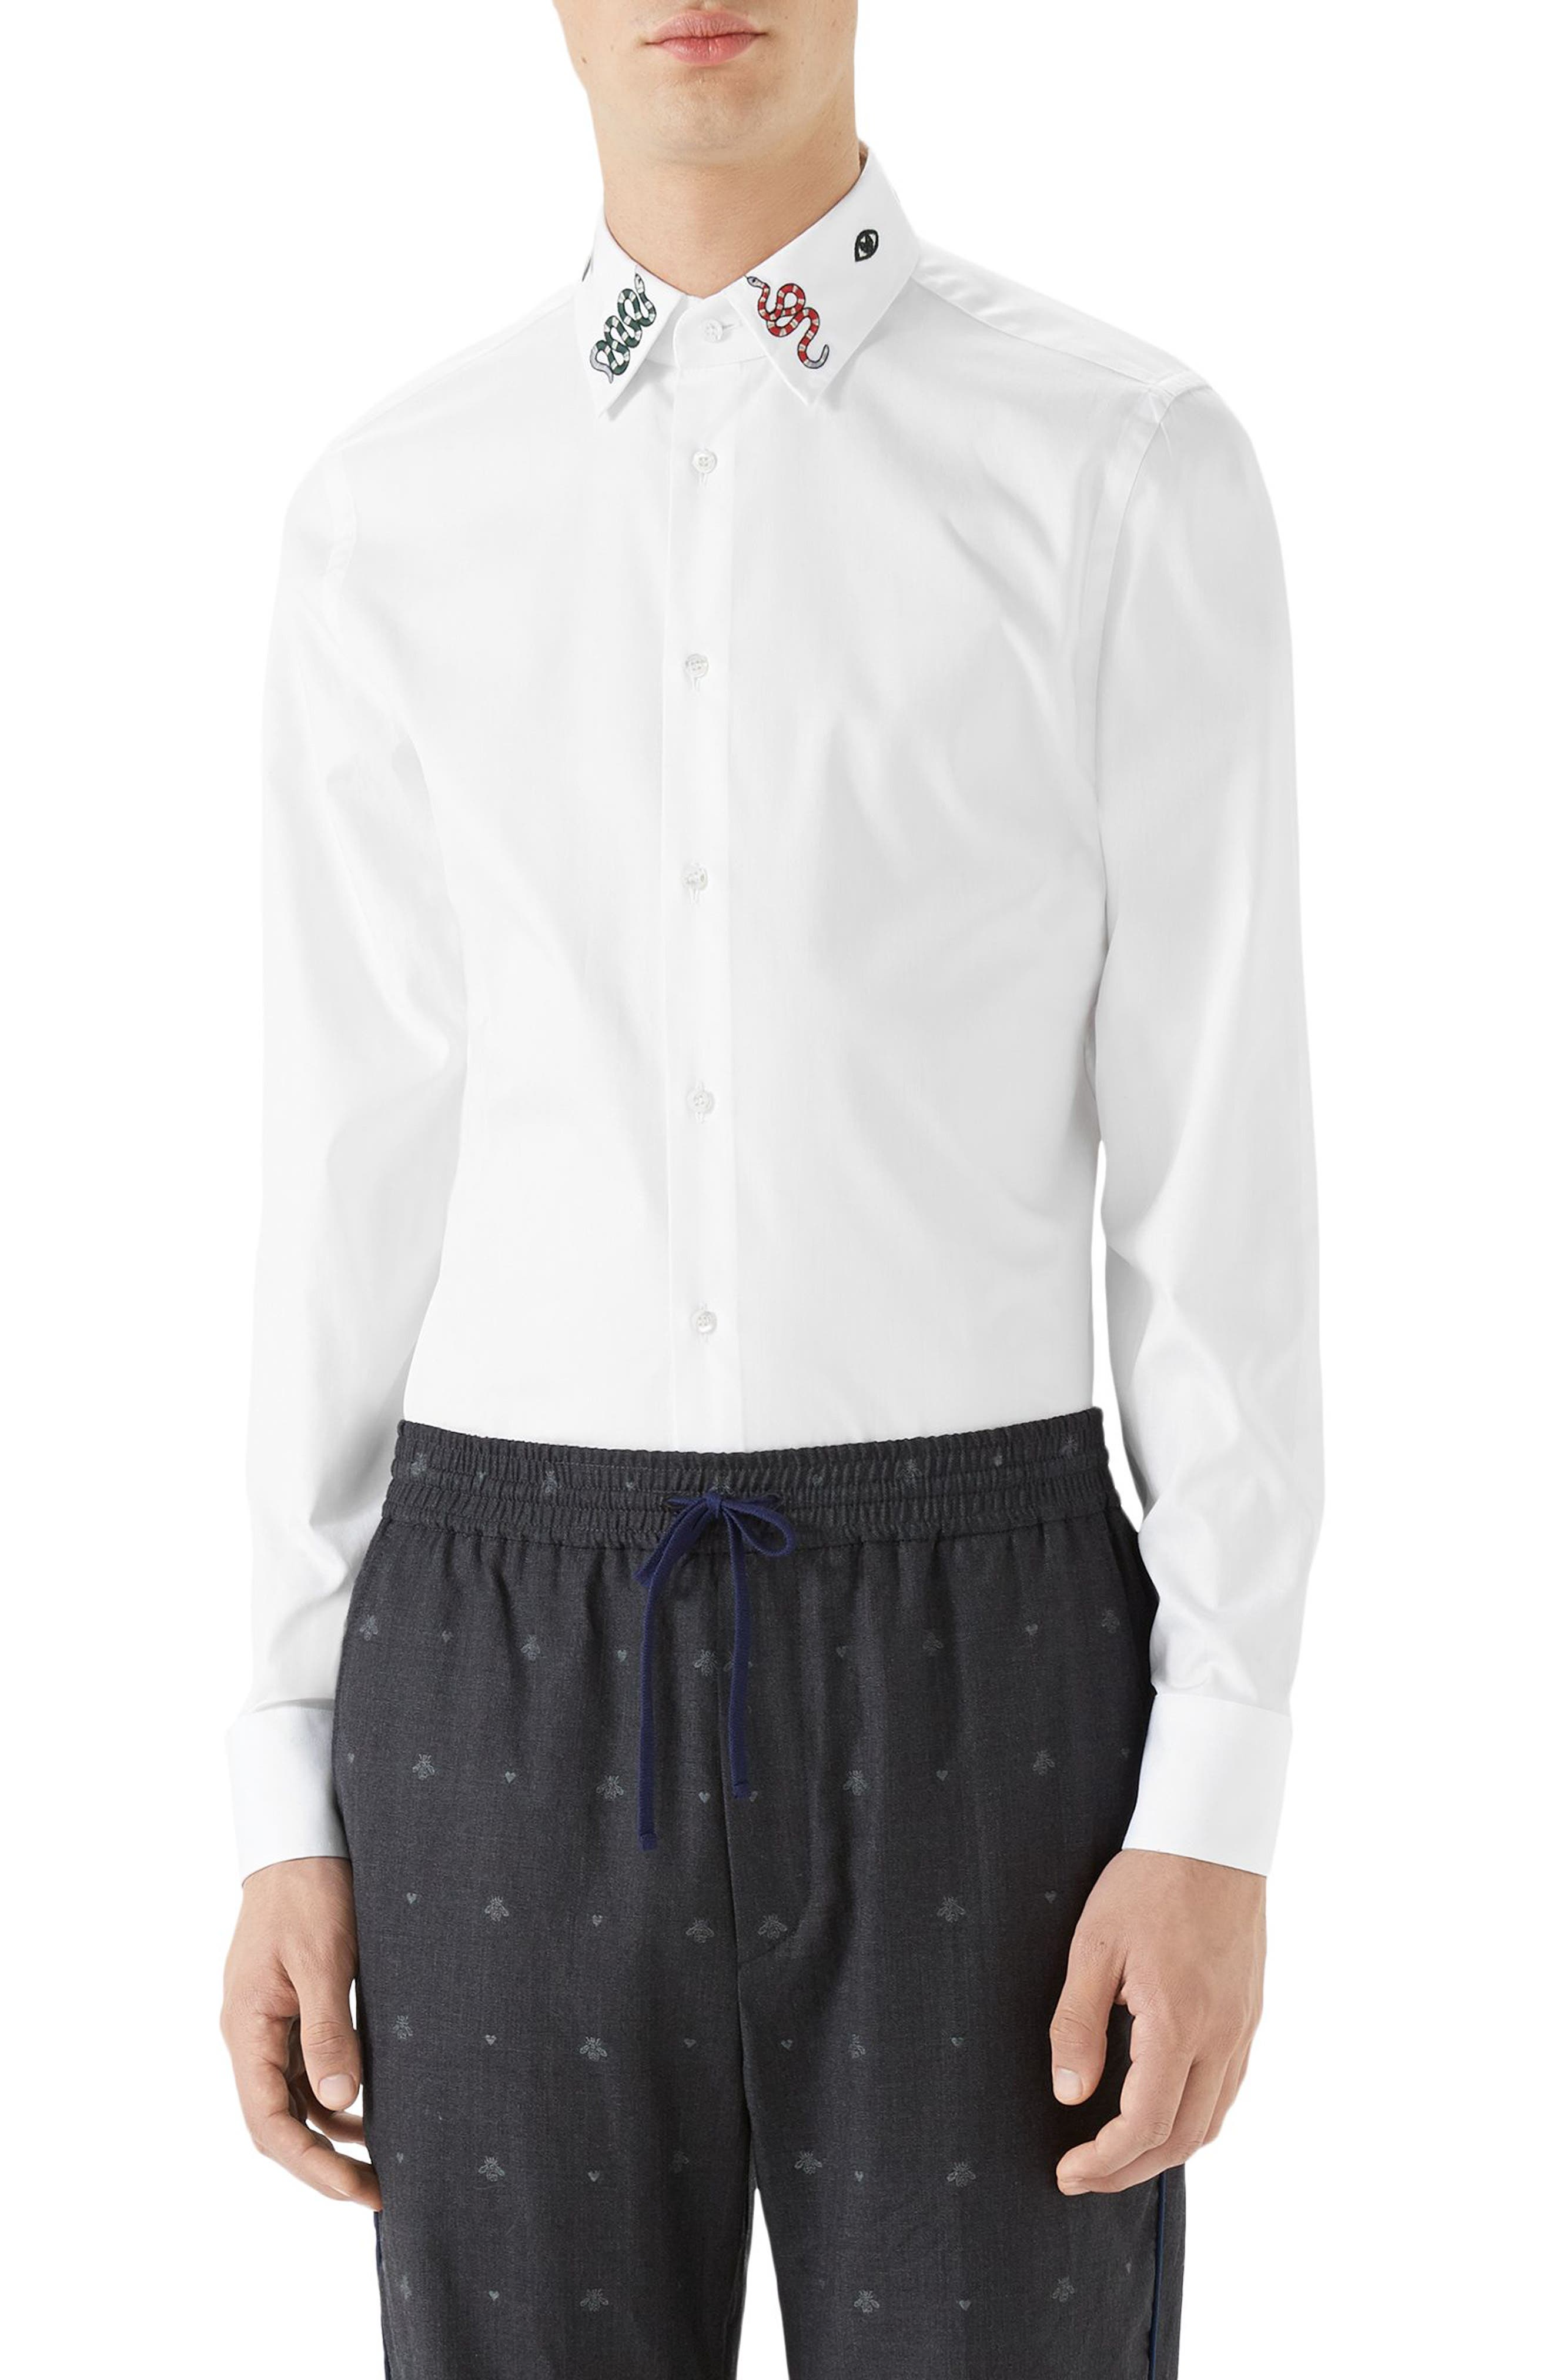 Embroidered Collar Emblem Sport Shirt,                         Main,                         color, White